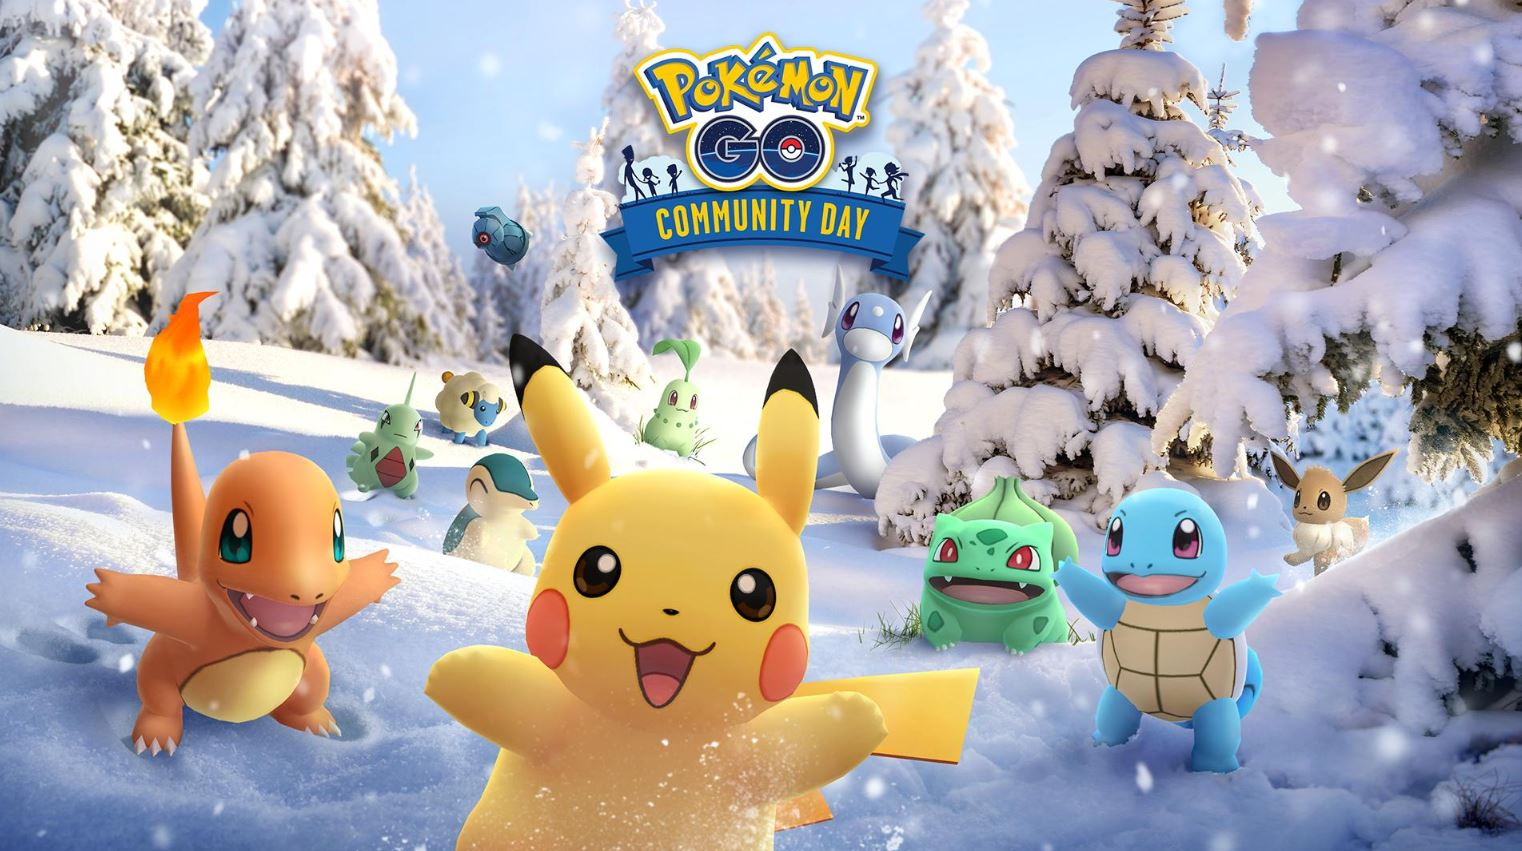 Photo of Pokemon Go December Community Day with Increased Shiny Form the Entire Weekend